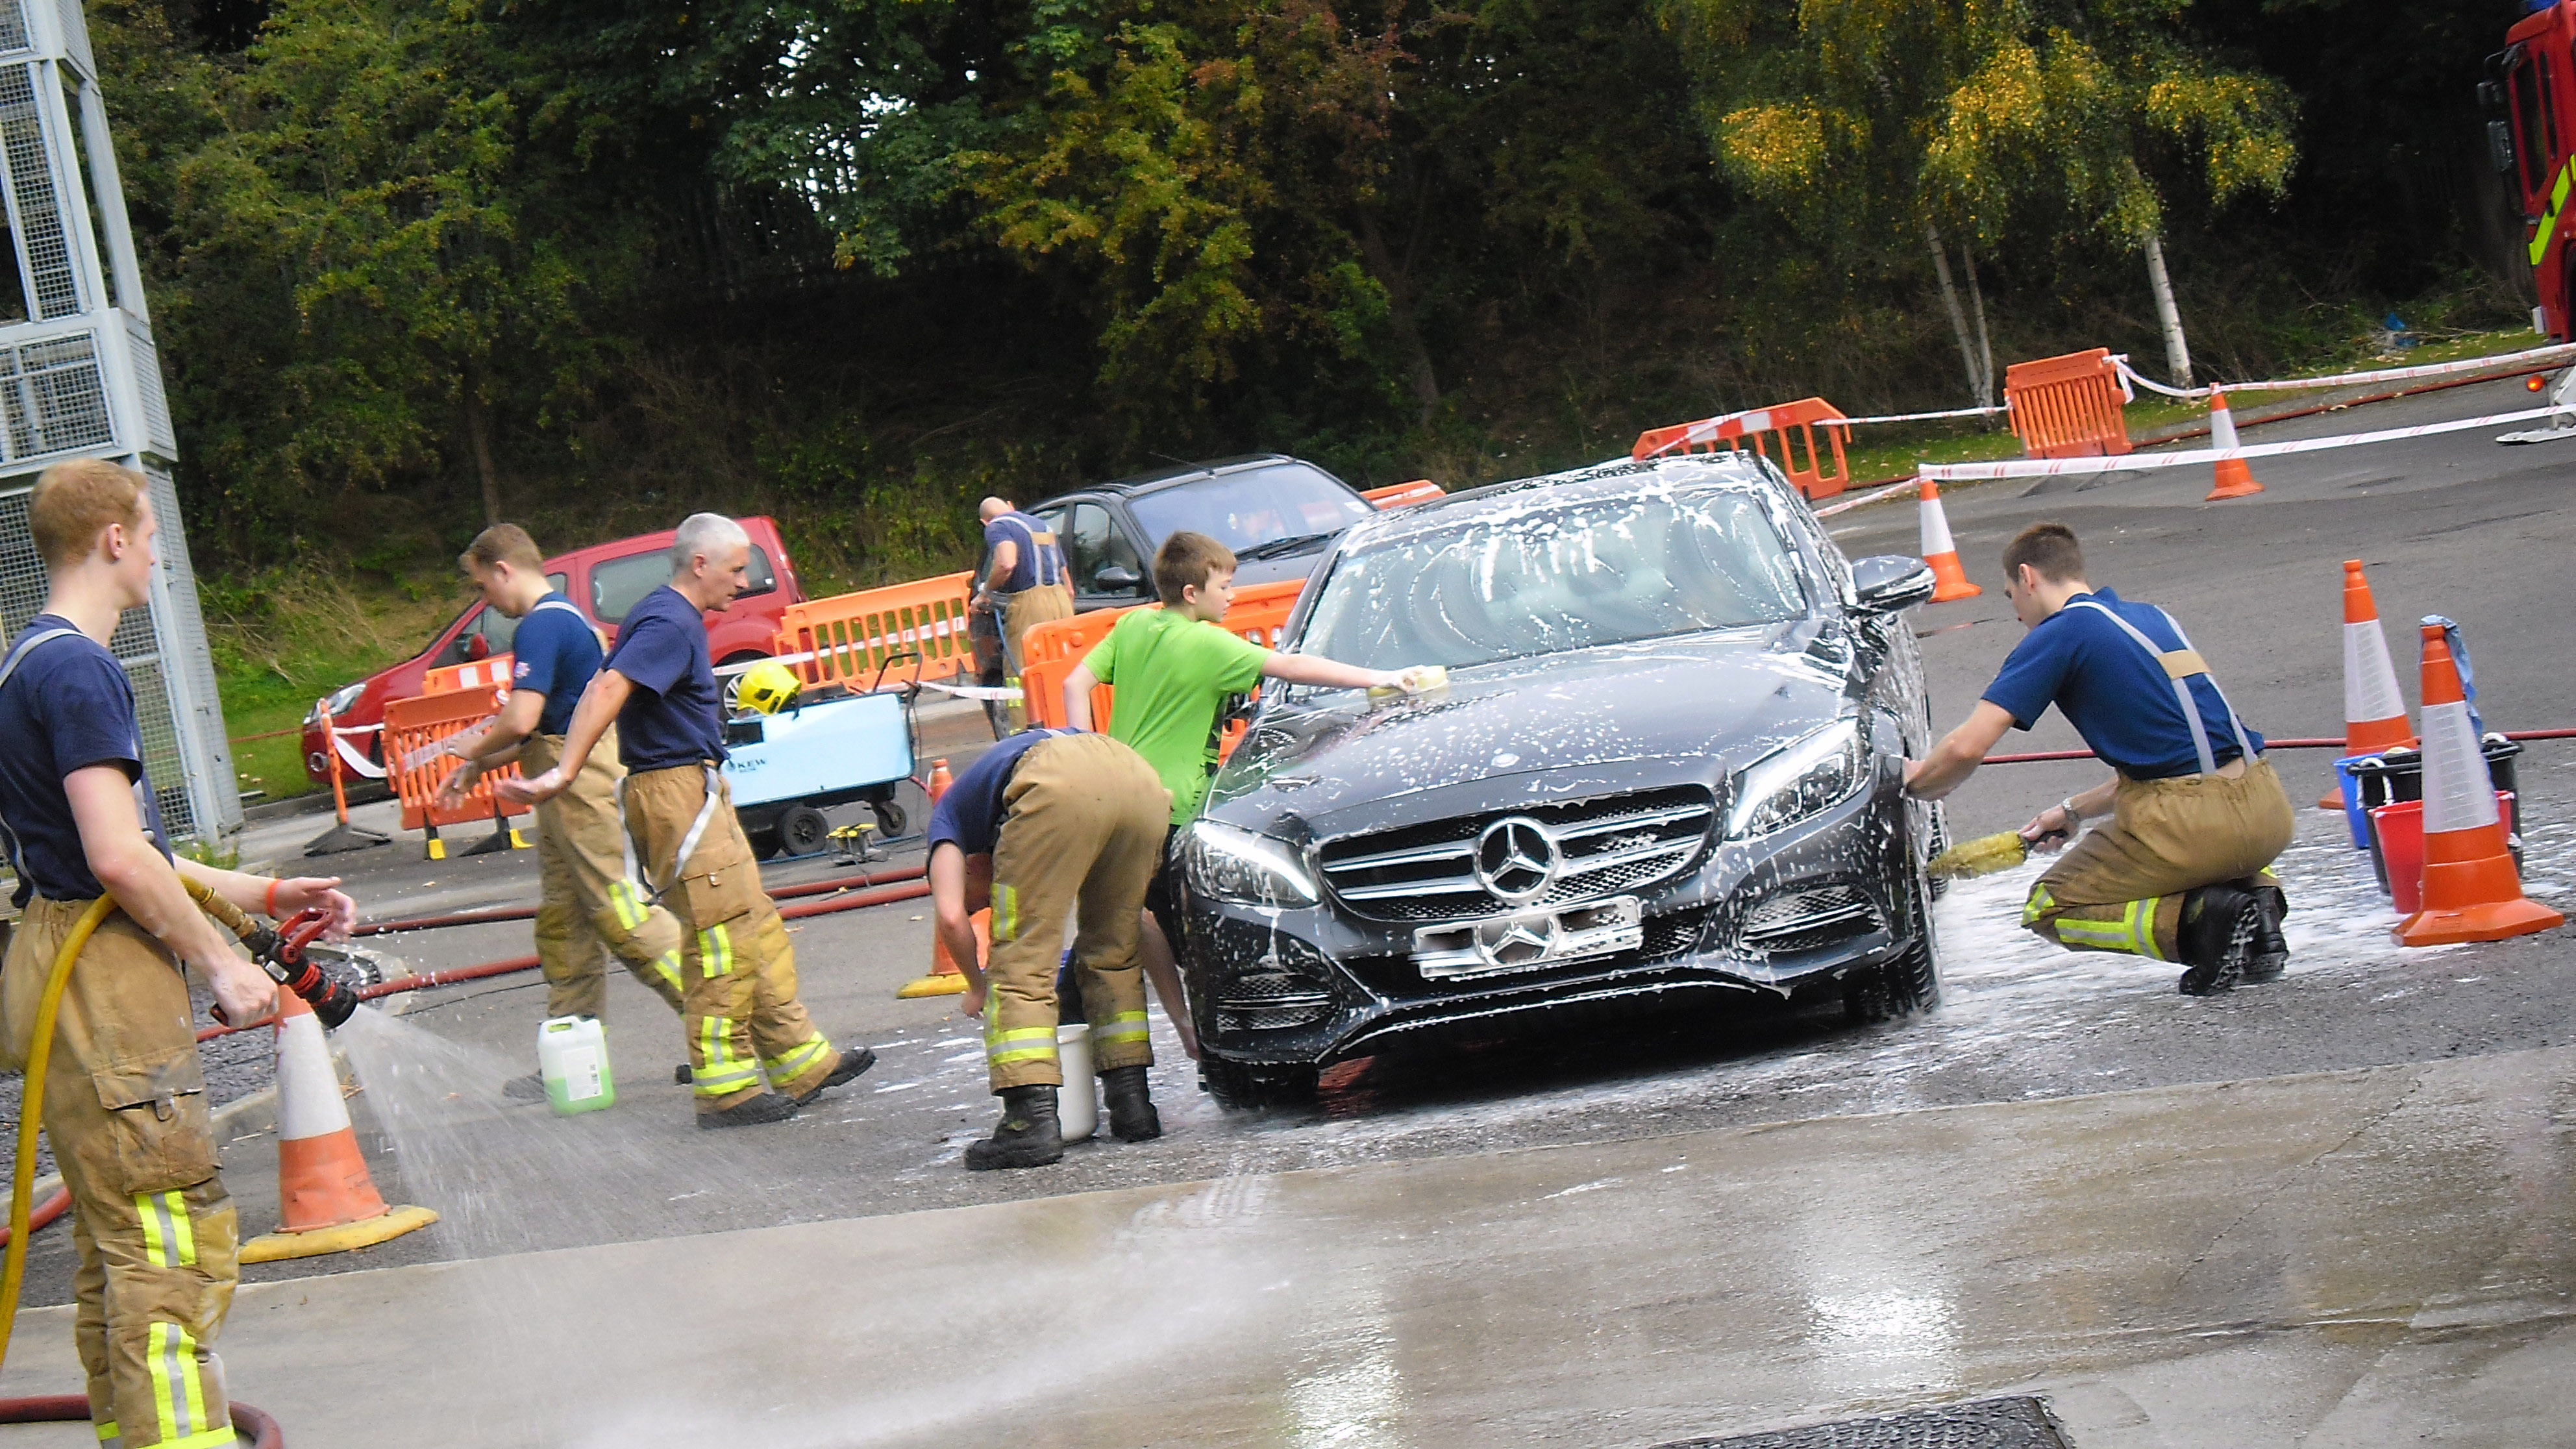 Firefighters Spring Charity Car Washes